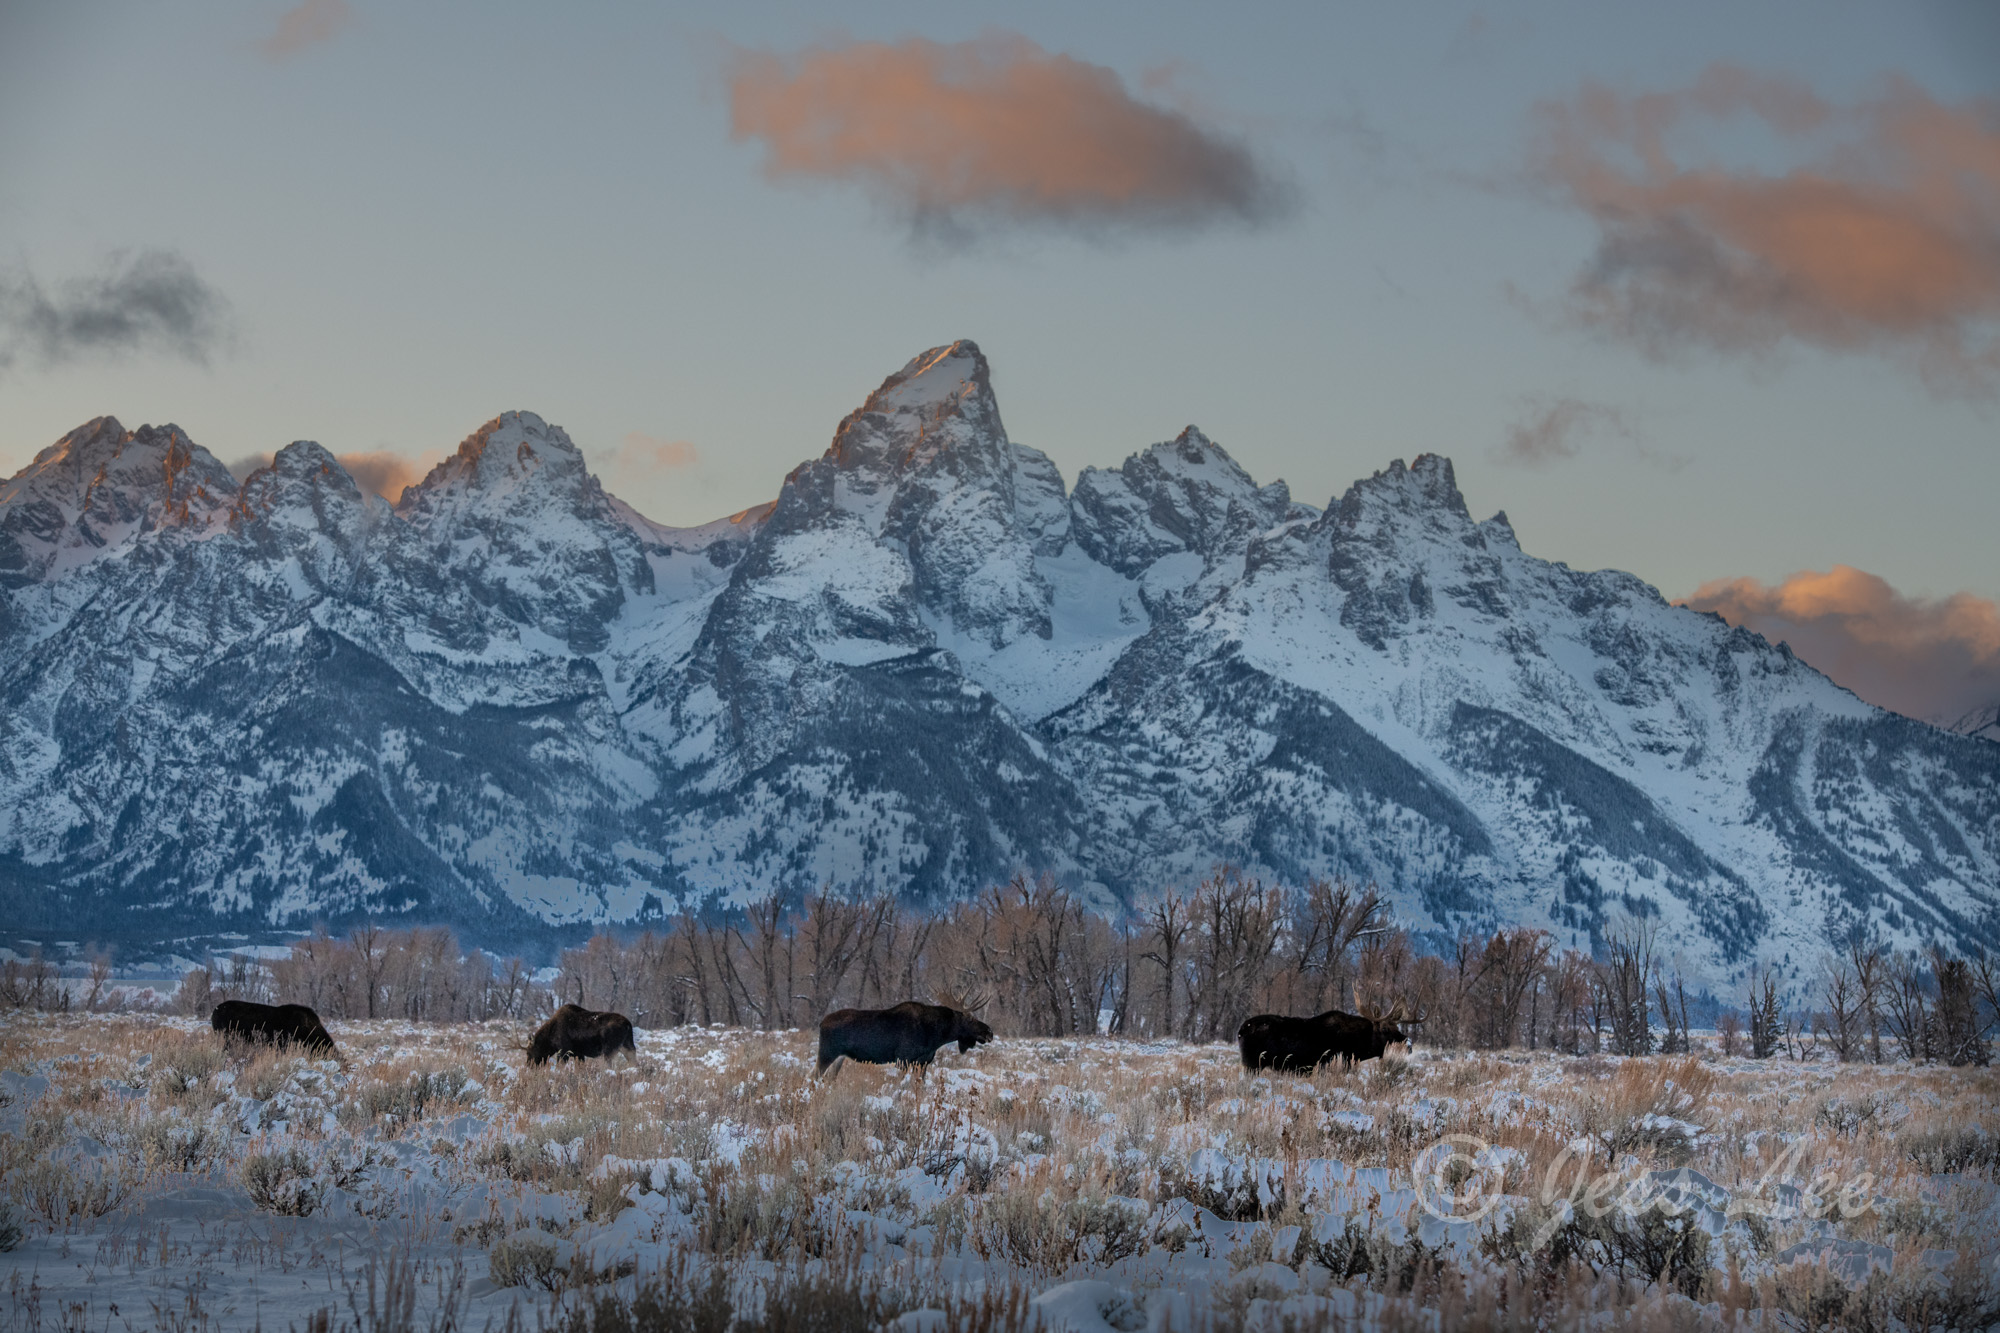 Grand Teton Moose on the Winter Range. These Moose fine art wildlife in landscape photographs are offered as high quality prints...